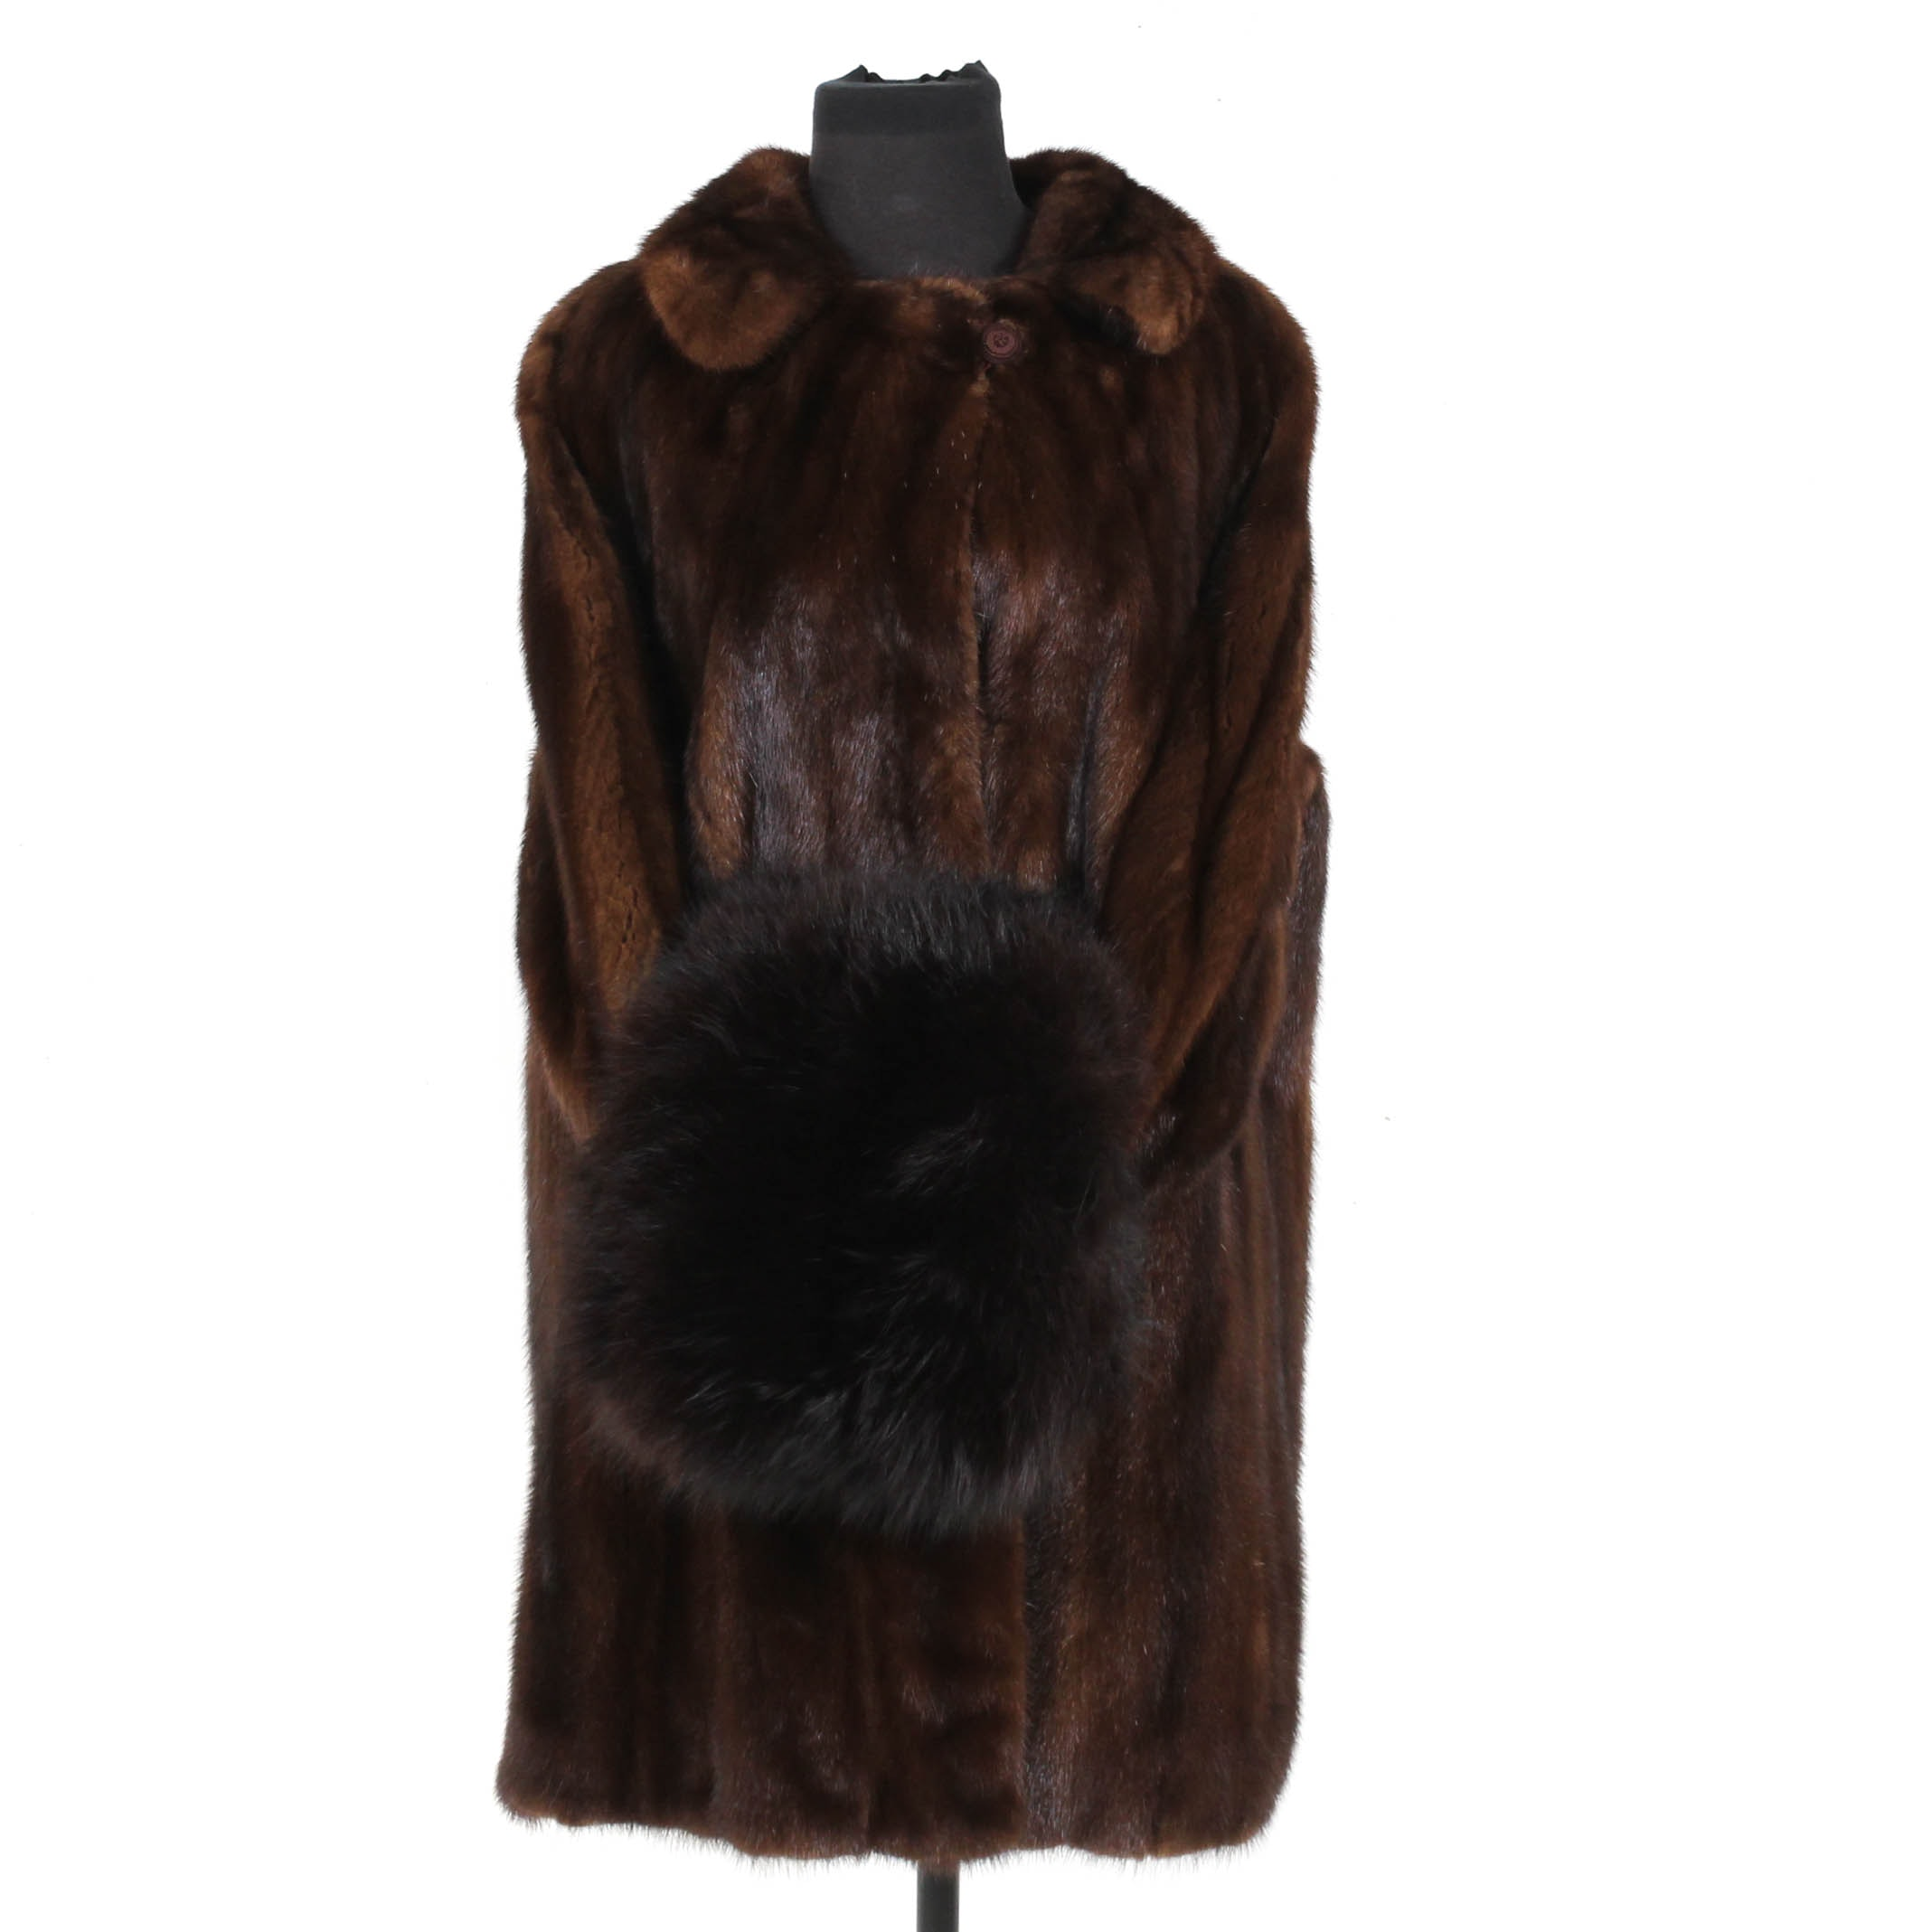 Vintage Mahogany Mink Fur Coat with Black Fox Fur Muff